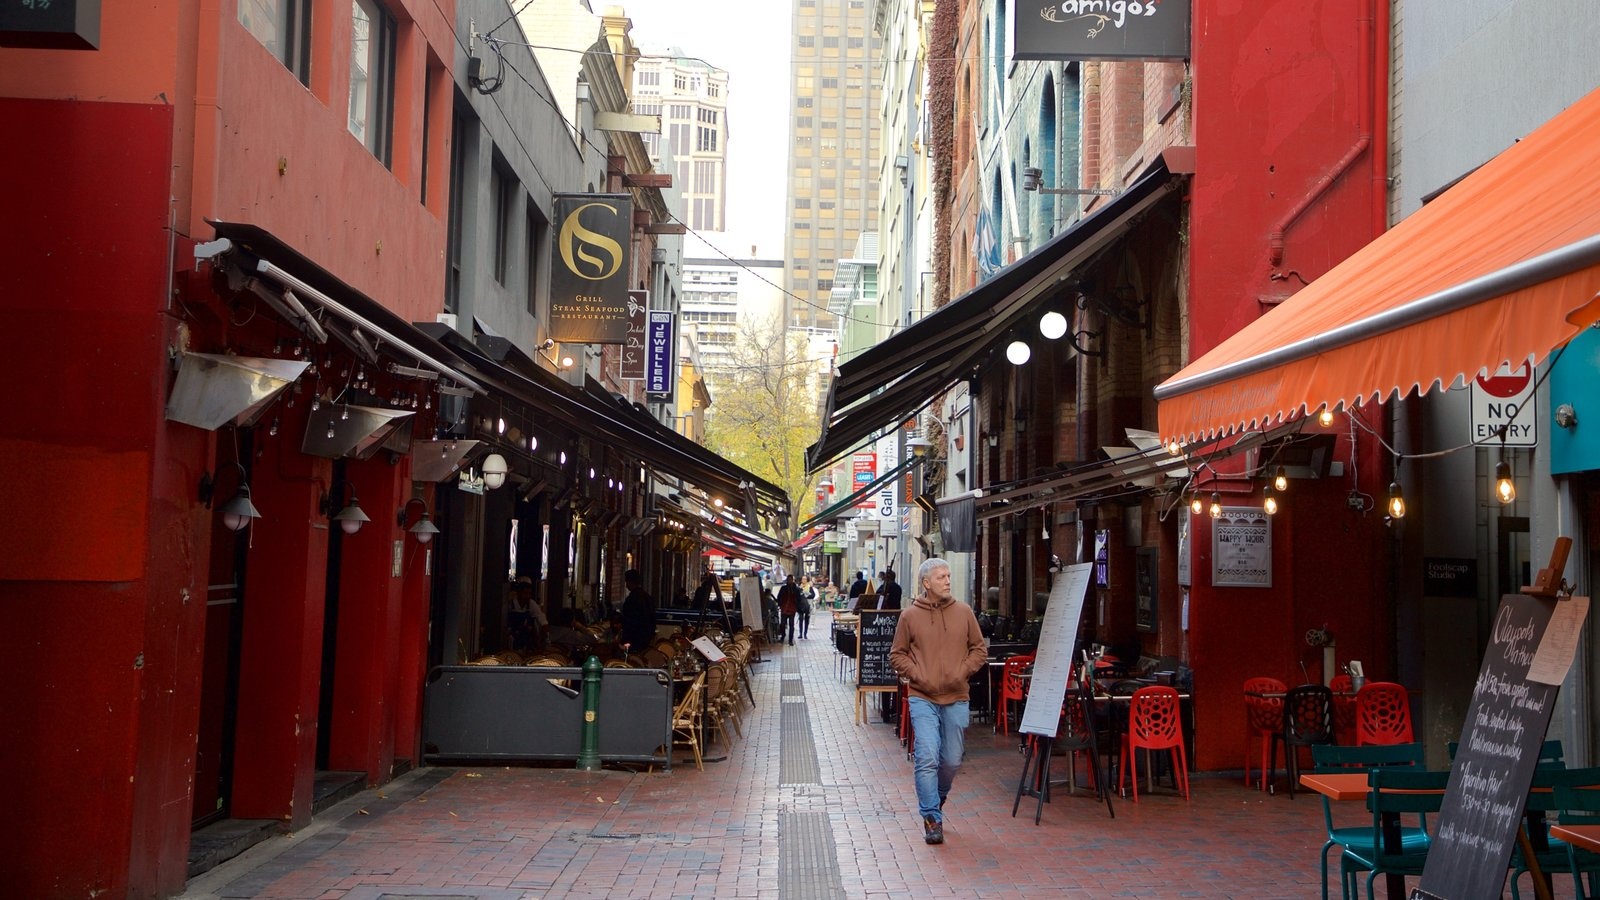 Hardware Lane showing street scenes as well as an individual male